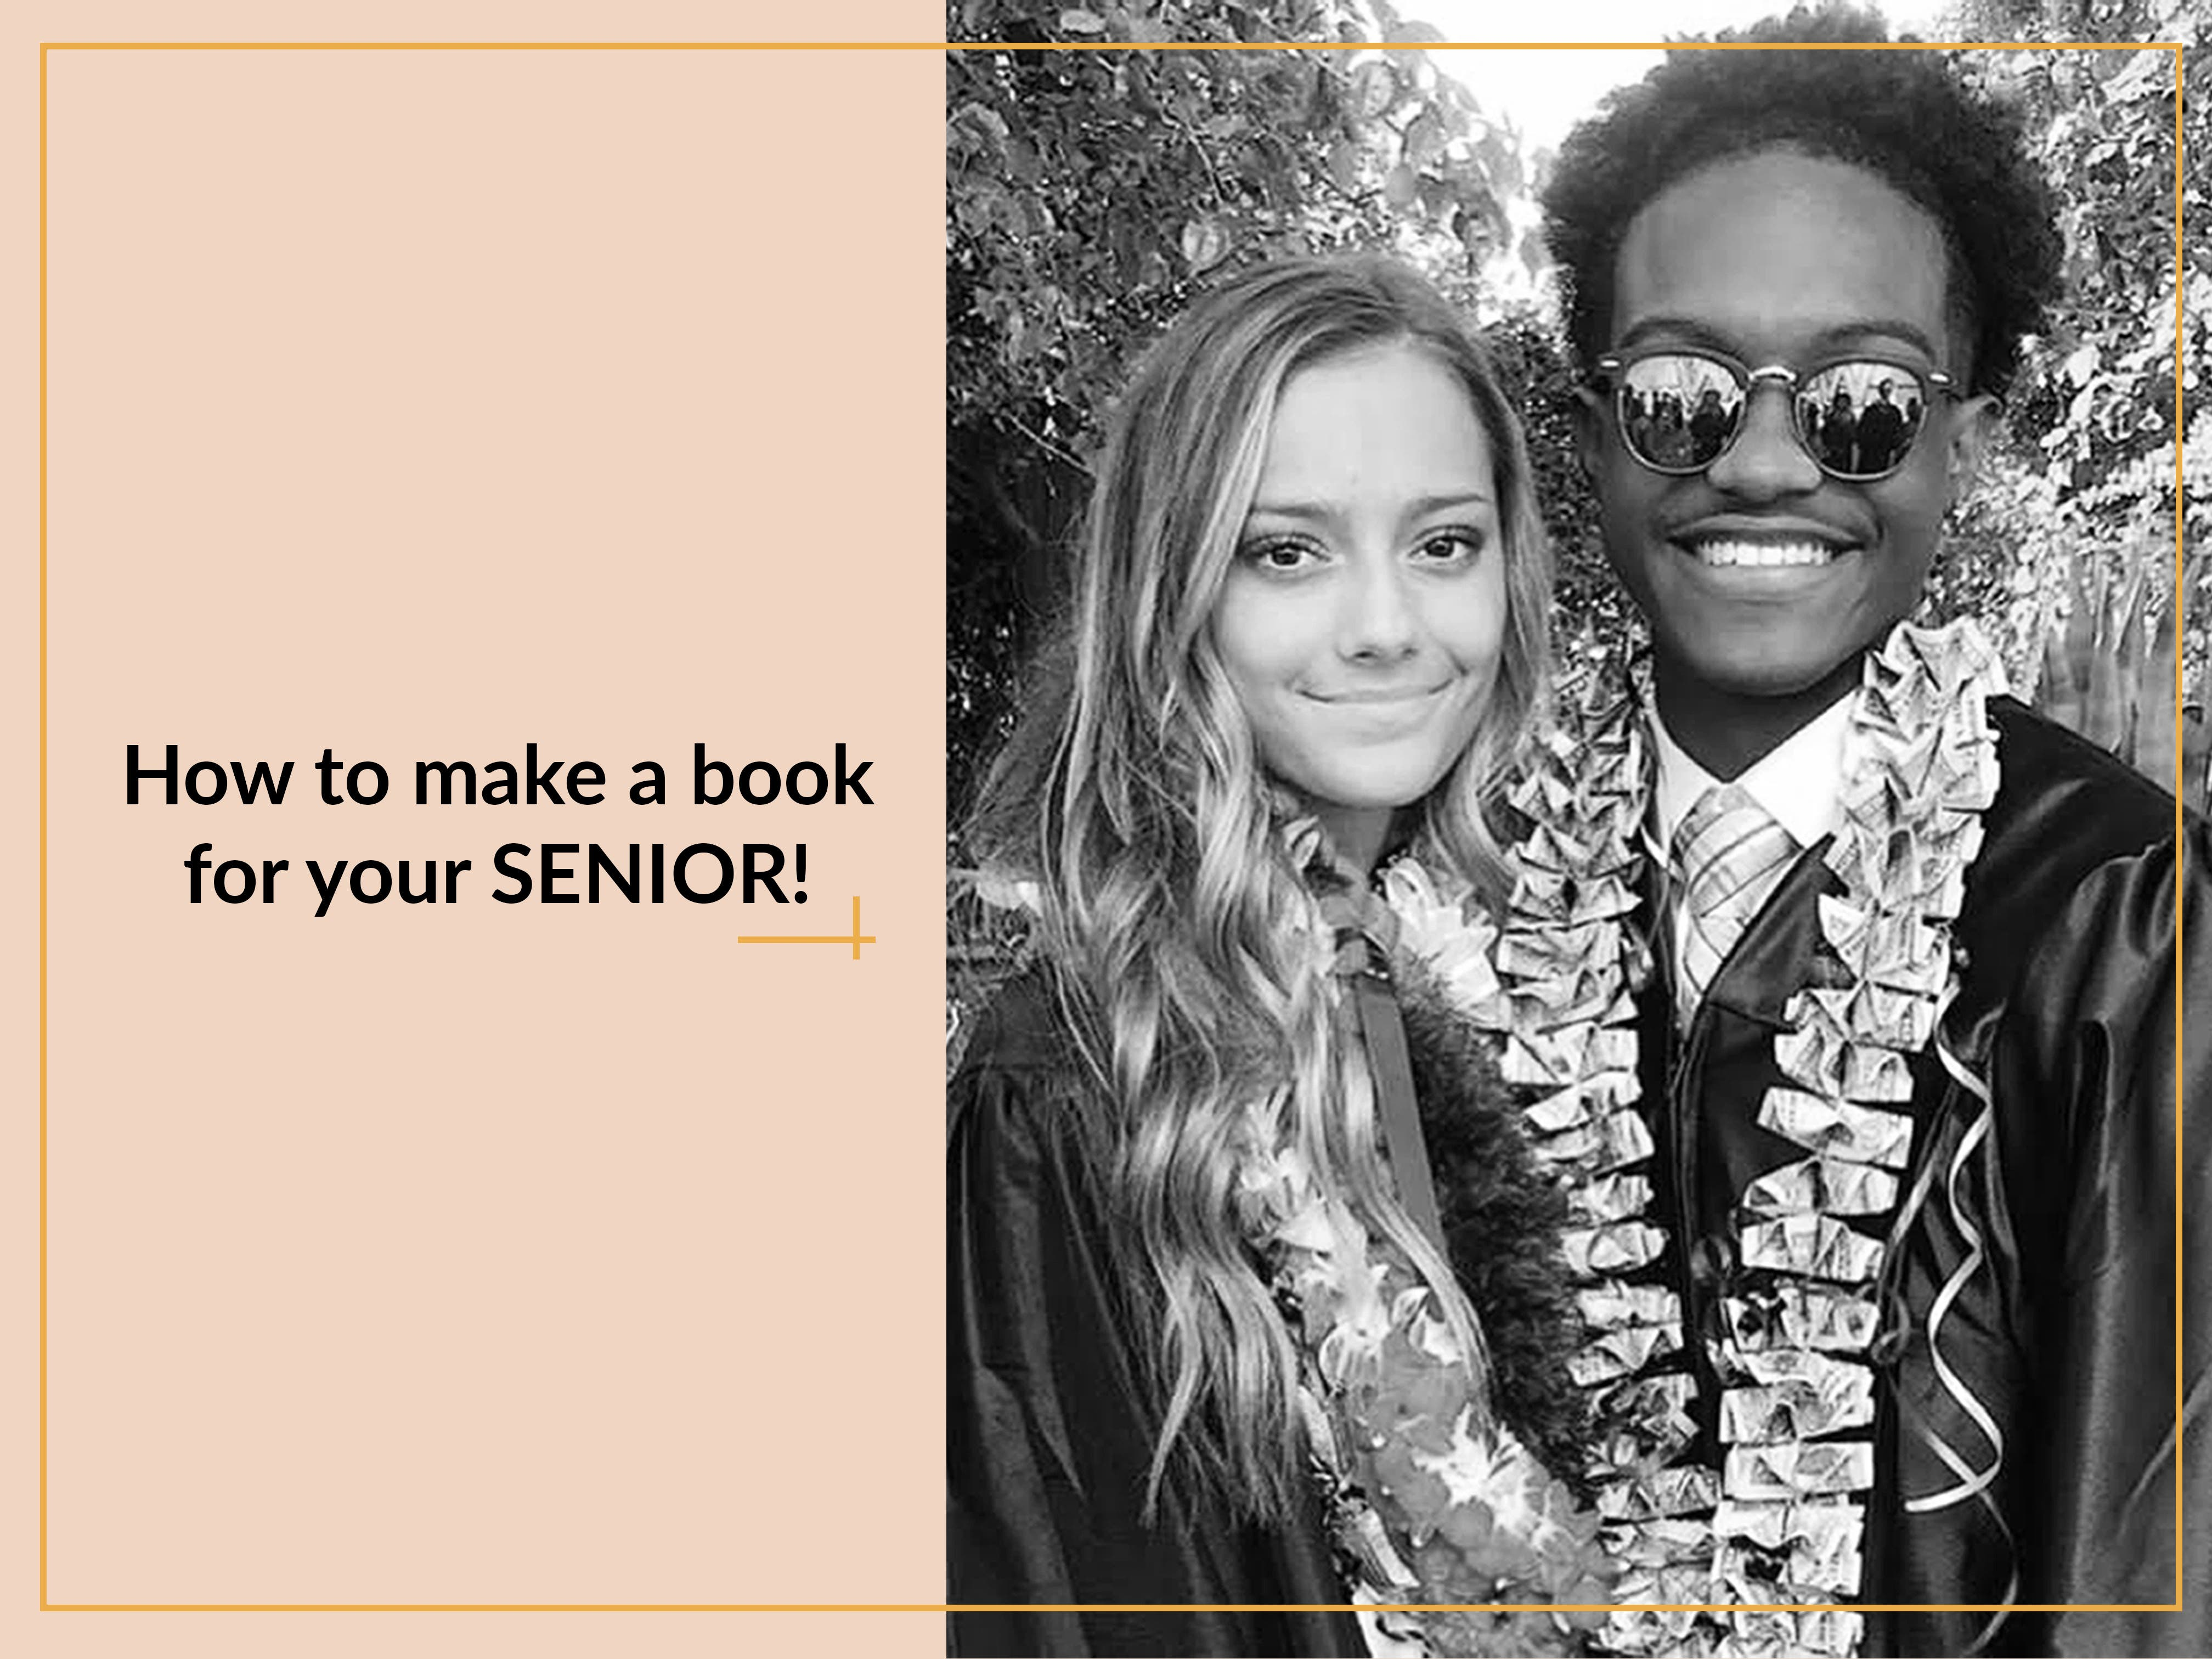 How to Make a Book for Your Senior